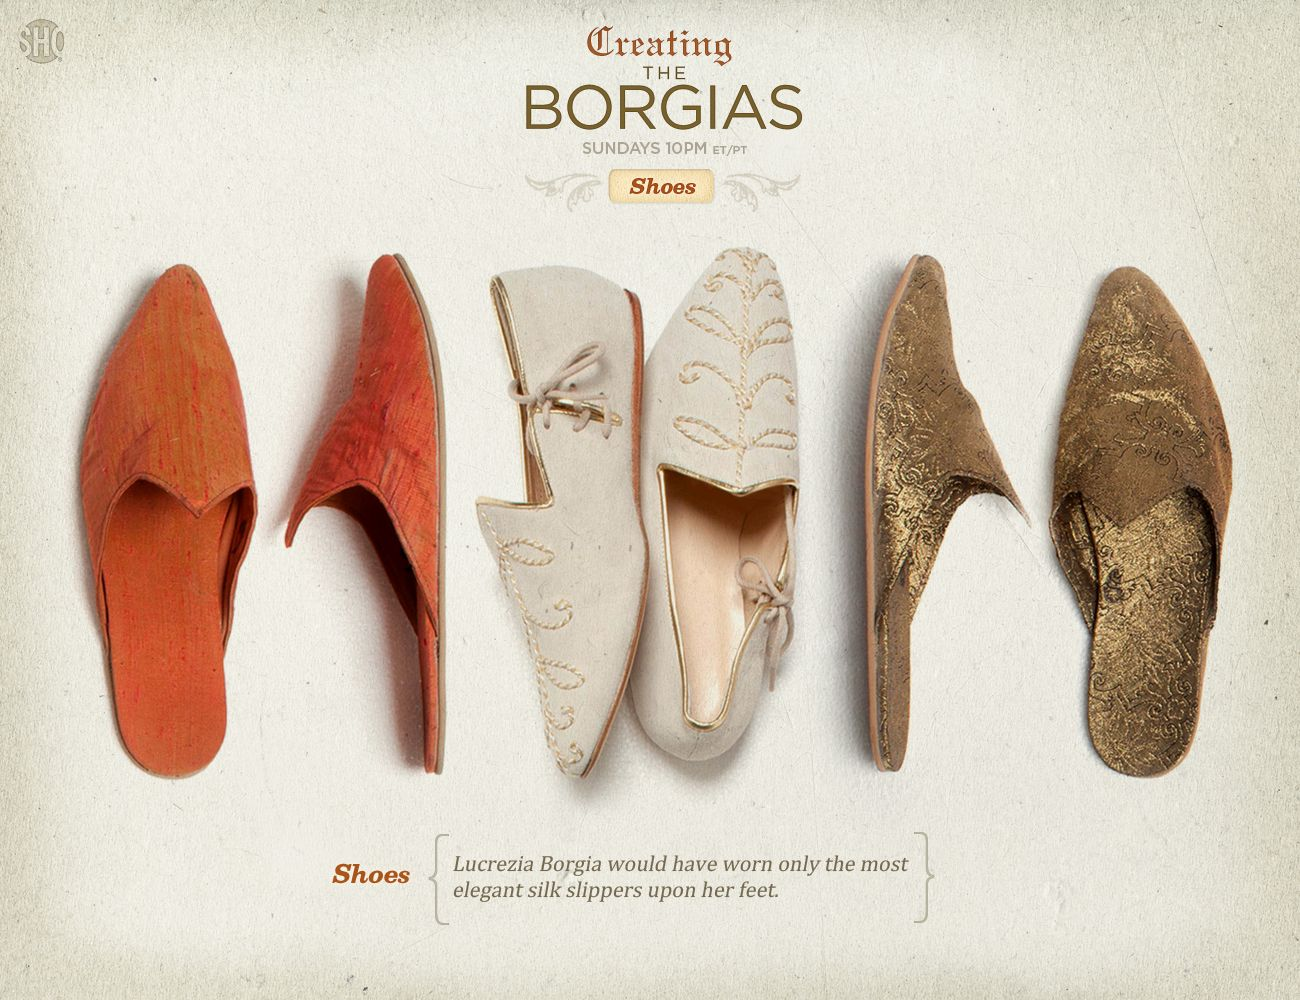 Lucrezia Borgia would have worn only the most elegant silk slippers upon her feet.